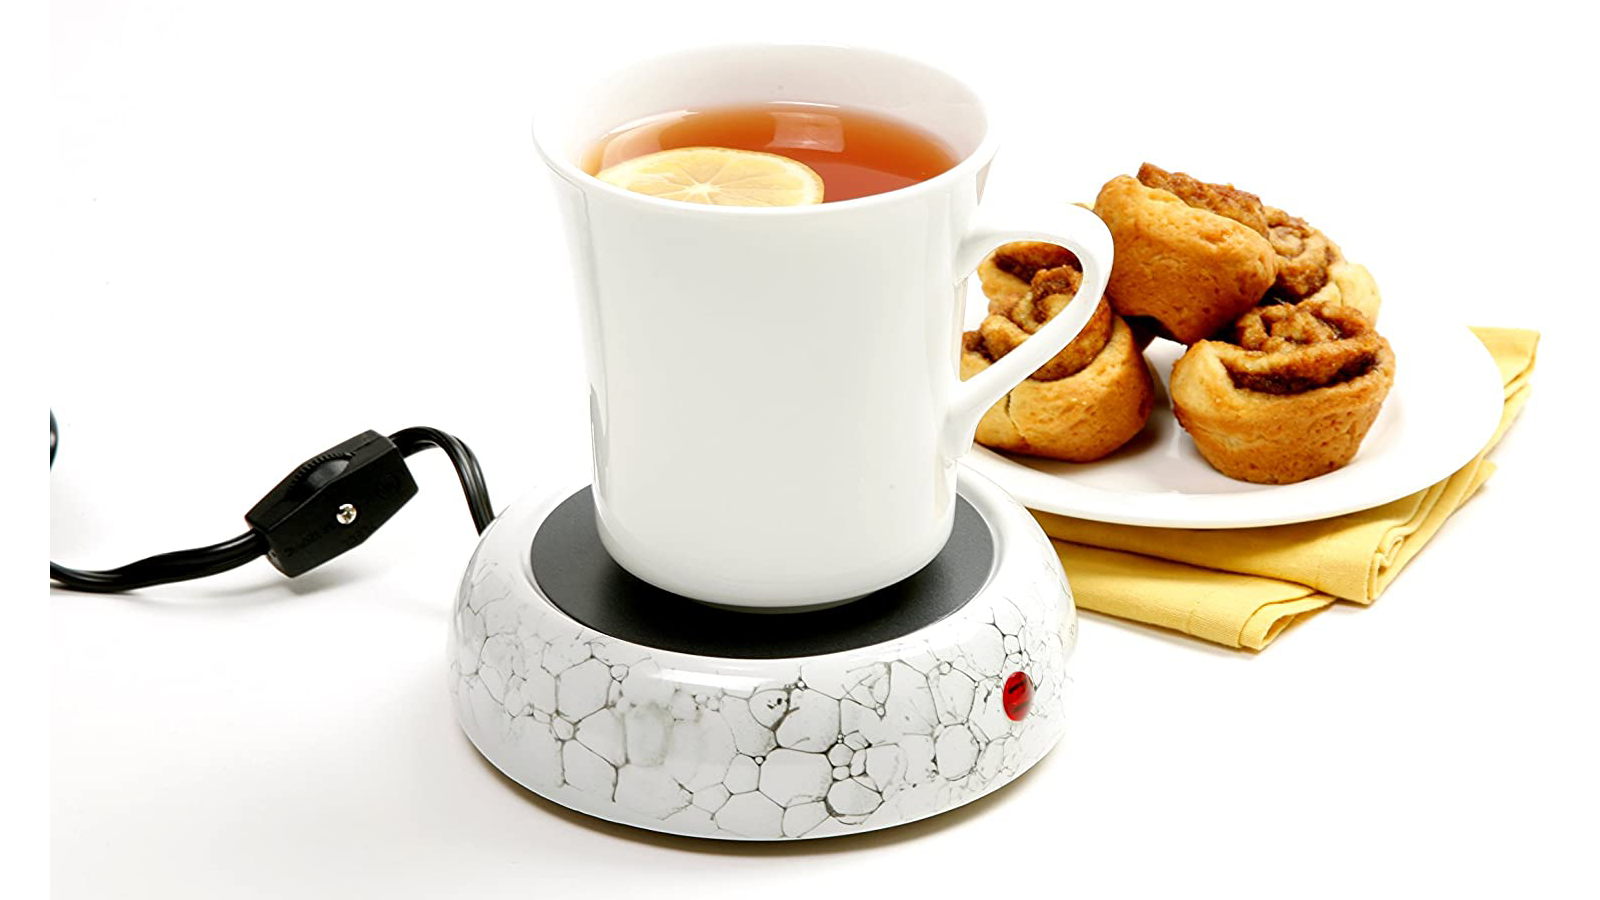 USB-Charged Cup Warmer for coffee, tea, or cocoa